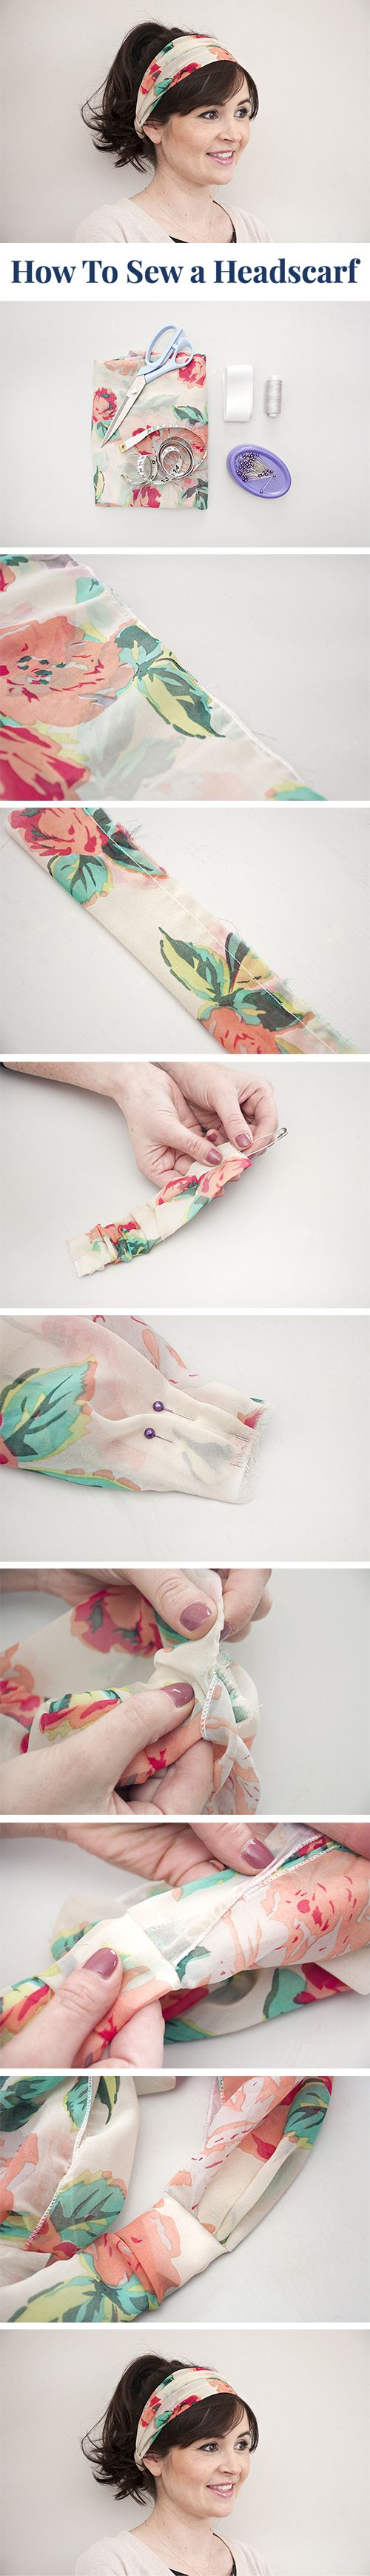 How to sew a headscarf | tutorial by Lisa Comfort